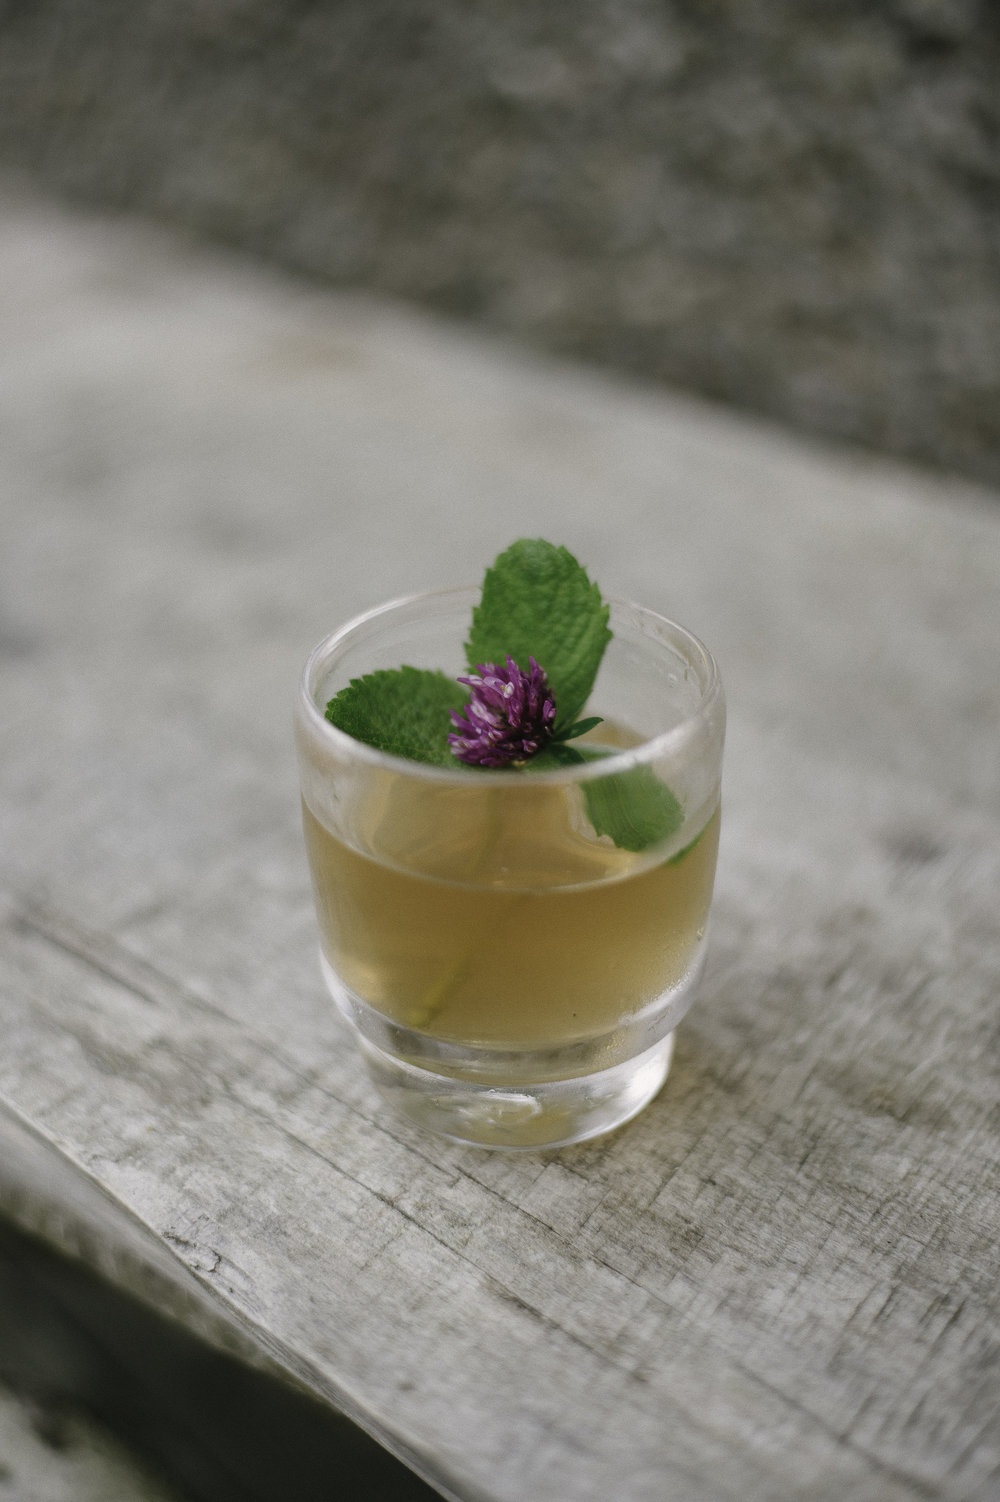 The Druid - 50ml Prizefight Whiskey10ml Red Clover Lemonade SyrupFresh Mint & Clover to garnish.Muddle a little mint in a shaker, pour over whiskey and syrup,add ice. Stir and strain into glass. Garnish with fresh mint and clover.